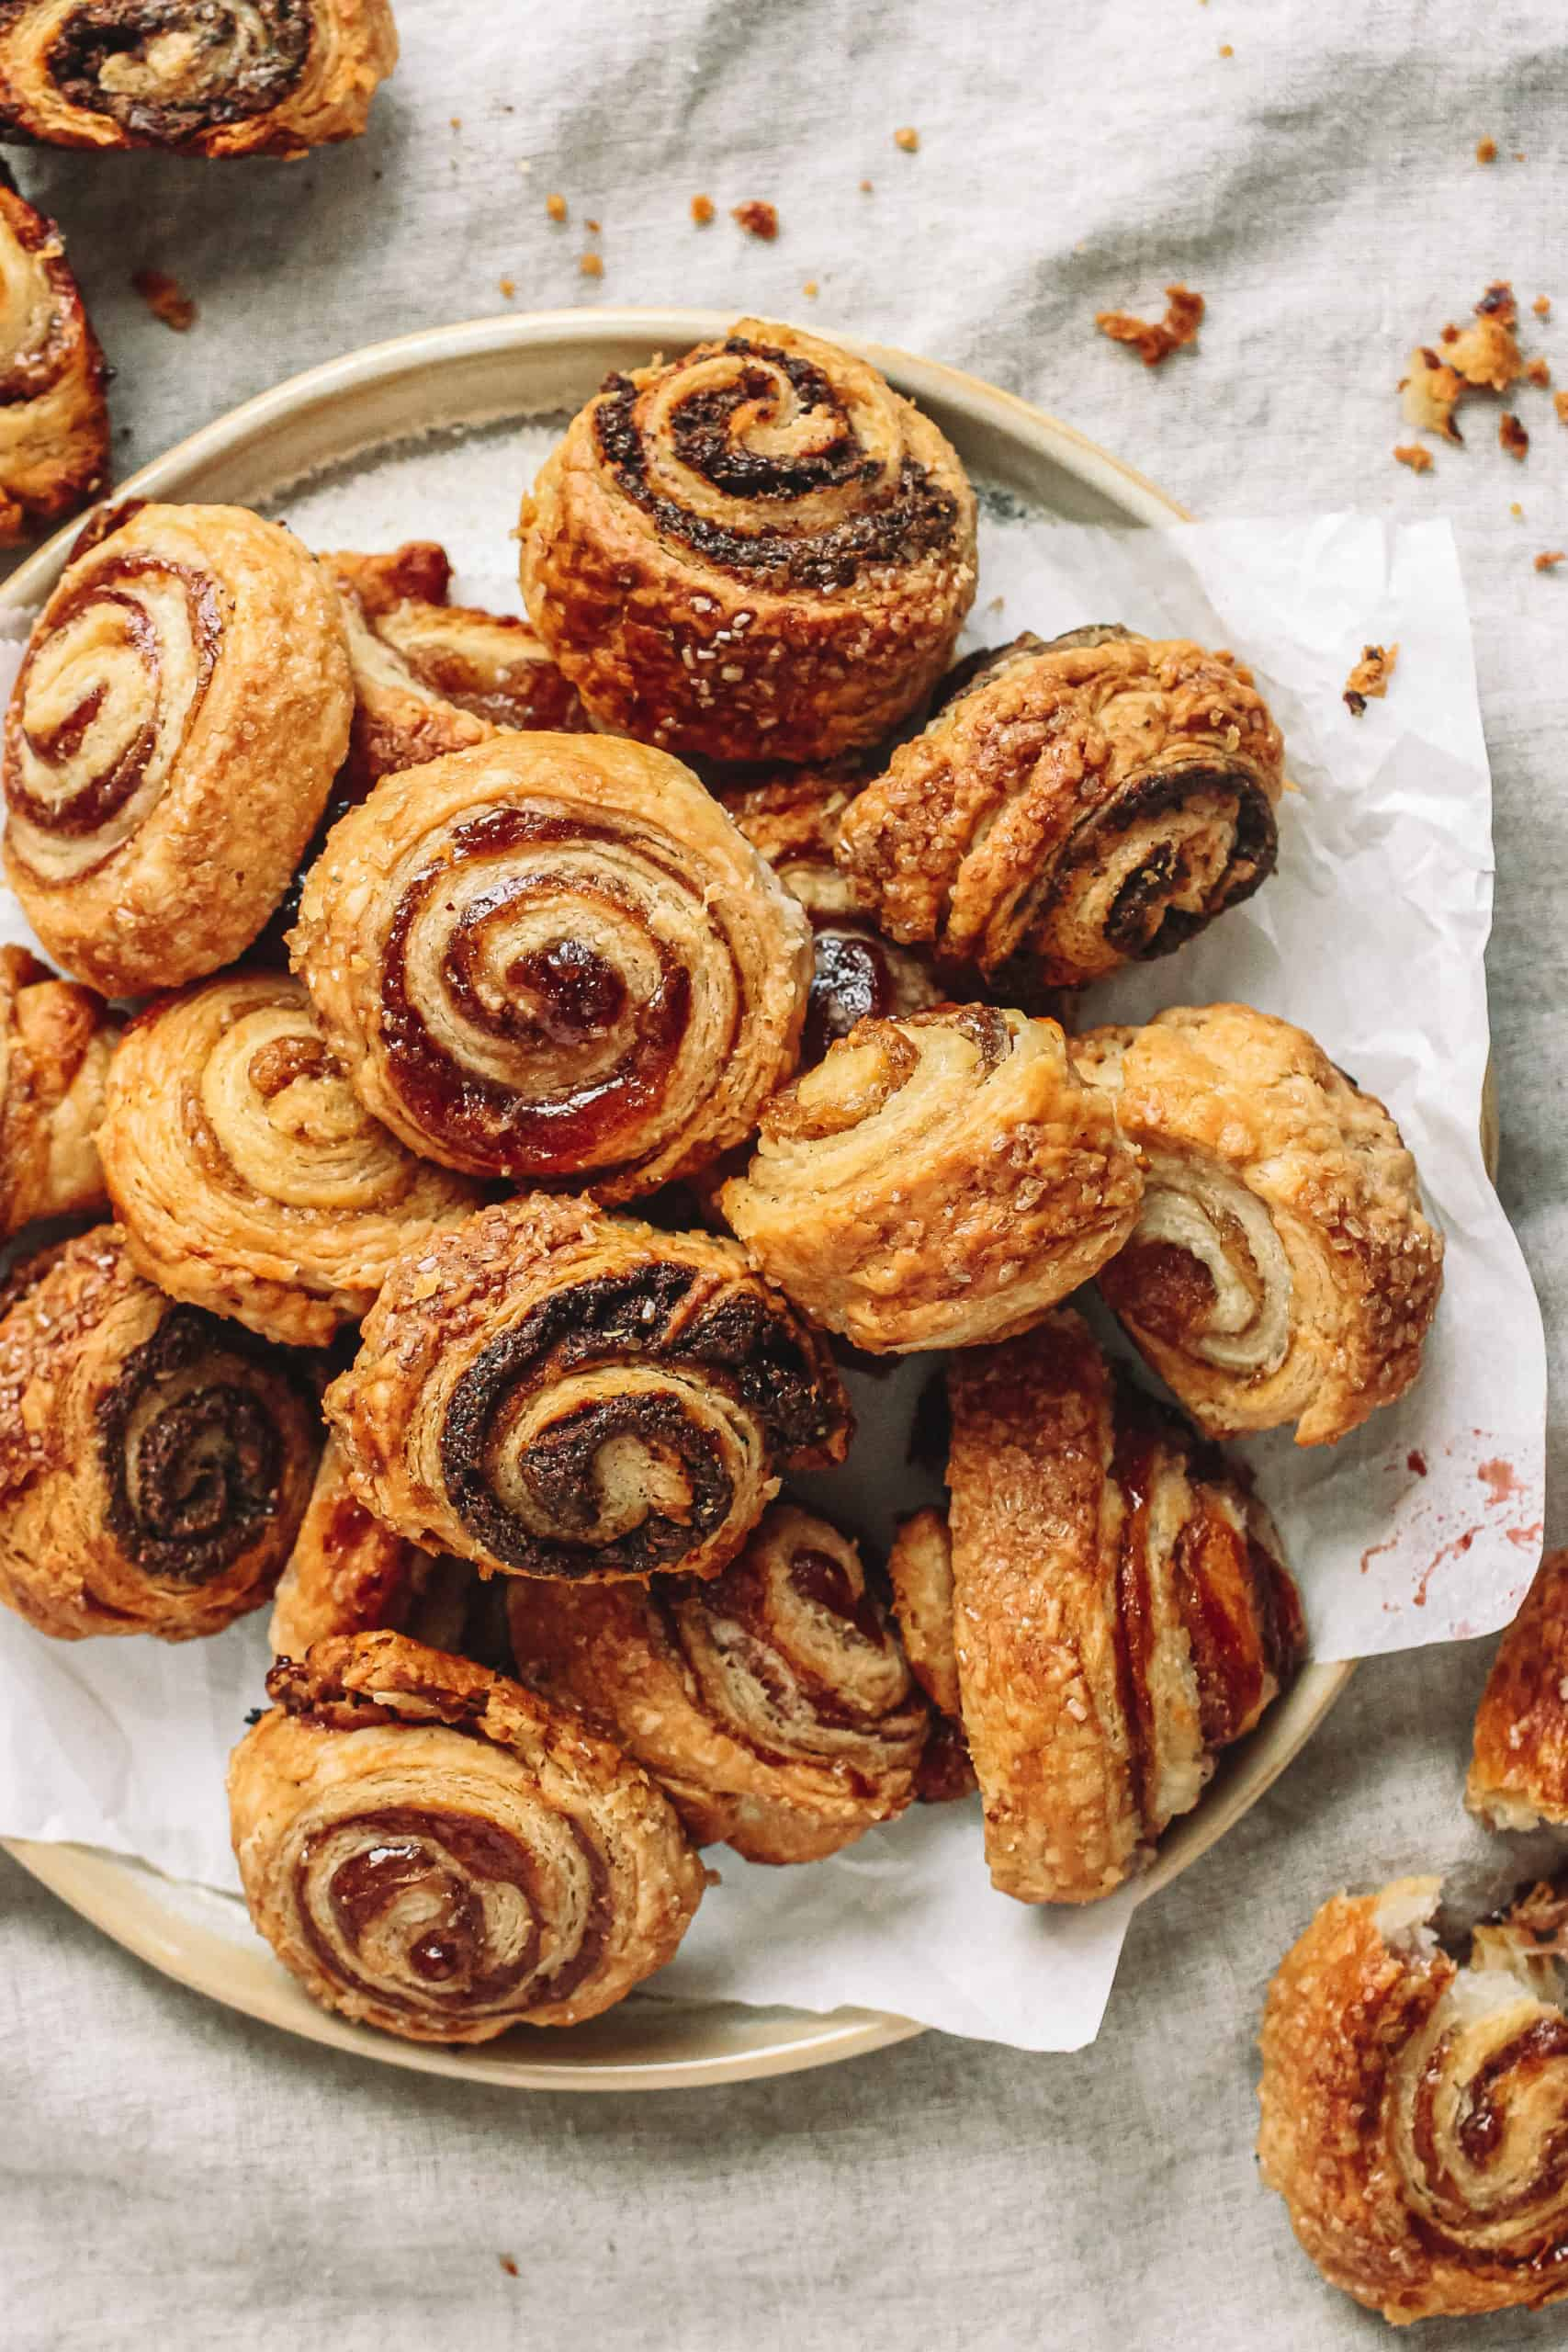 Vegan Rugelach is buttery and flaky with a crisp and airy pastry dough filled with raspberry jam, fig jam, and homemade poppyseed filling.